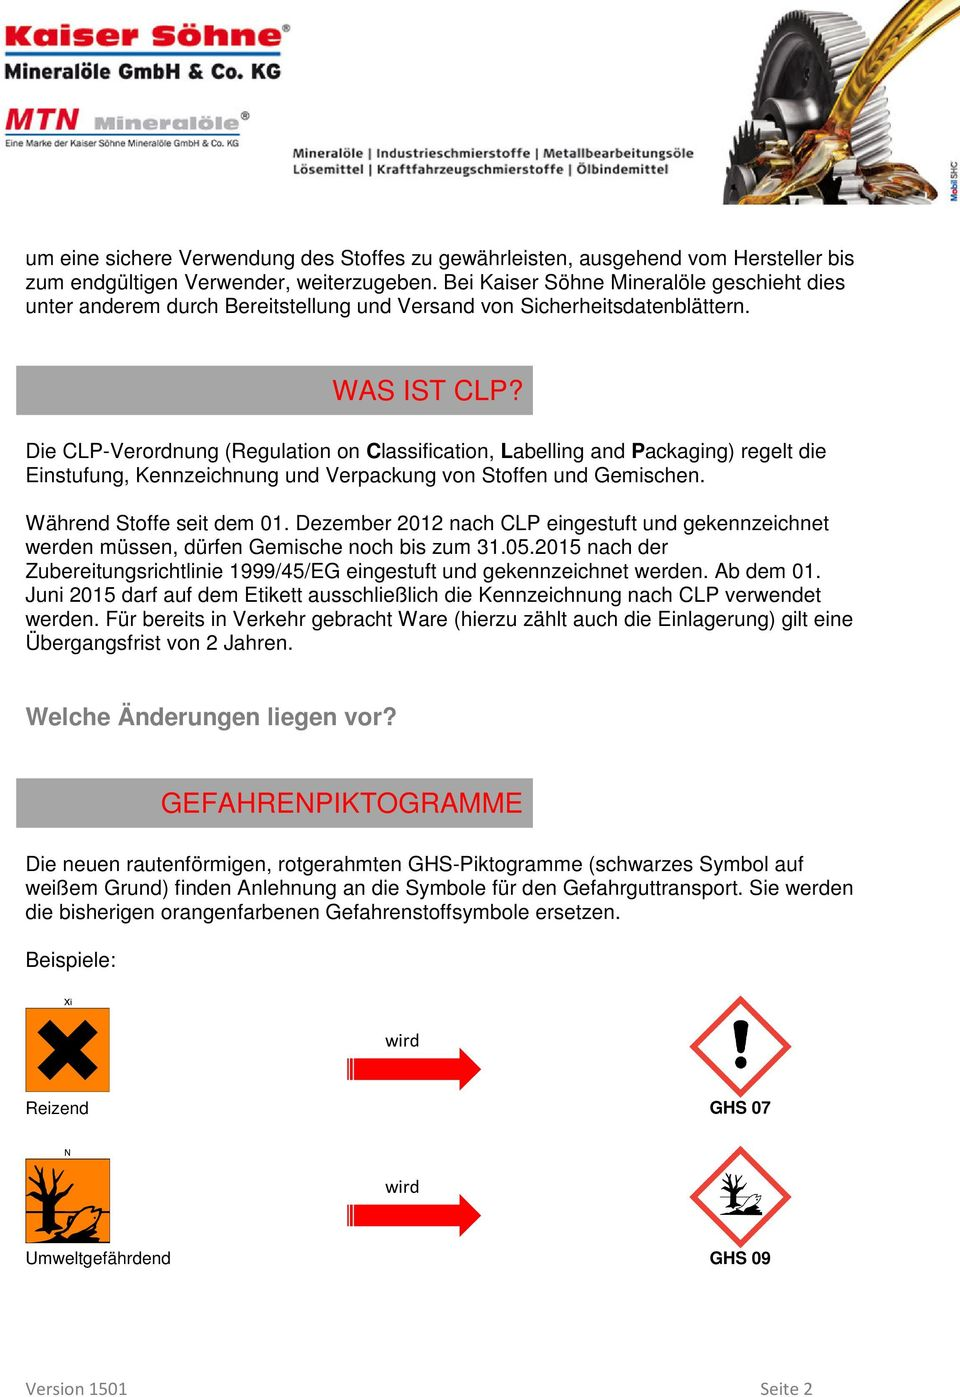 Die CLP-Verordnung (Regulation on Classification, Labelling and Packaging) regelt die Einstufung, Kennzeichnung und Verpackung von Stoffen und Gemischen. Während Stoffe seit dem 01.